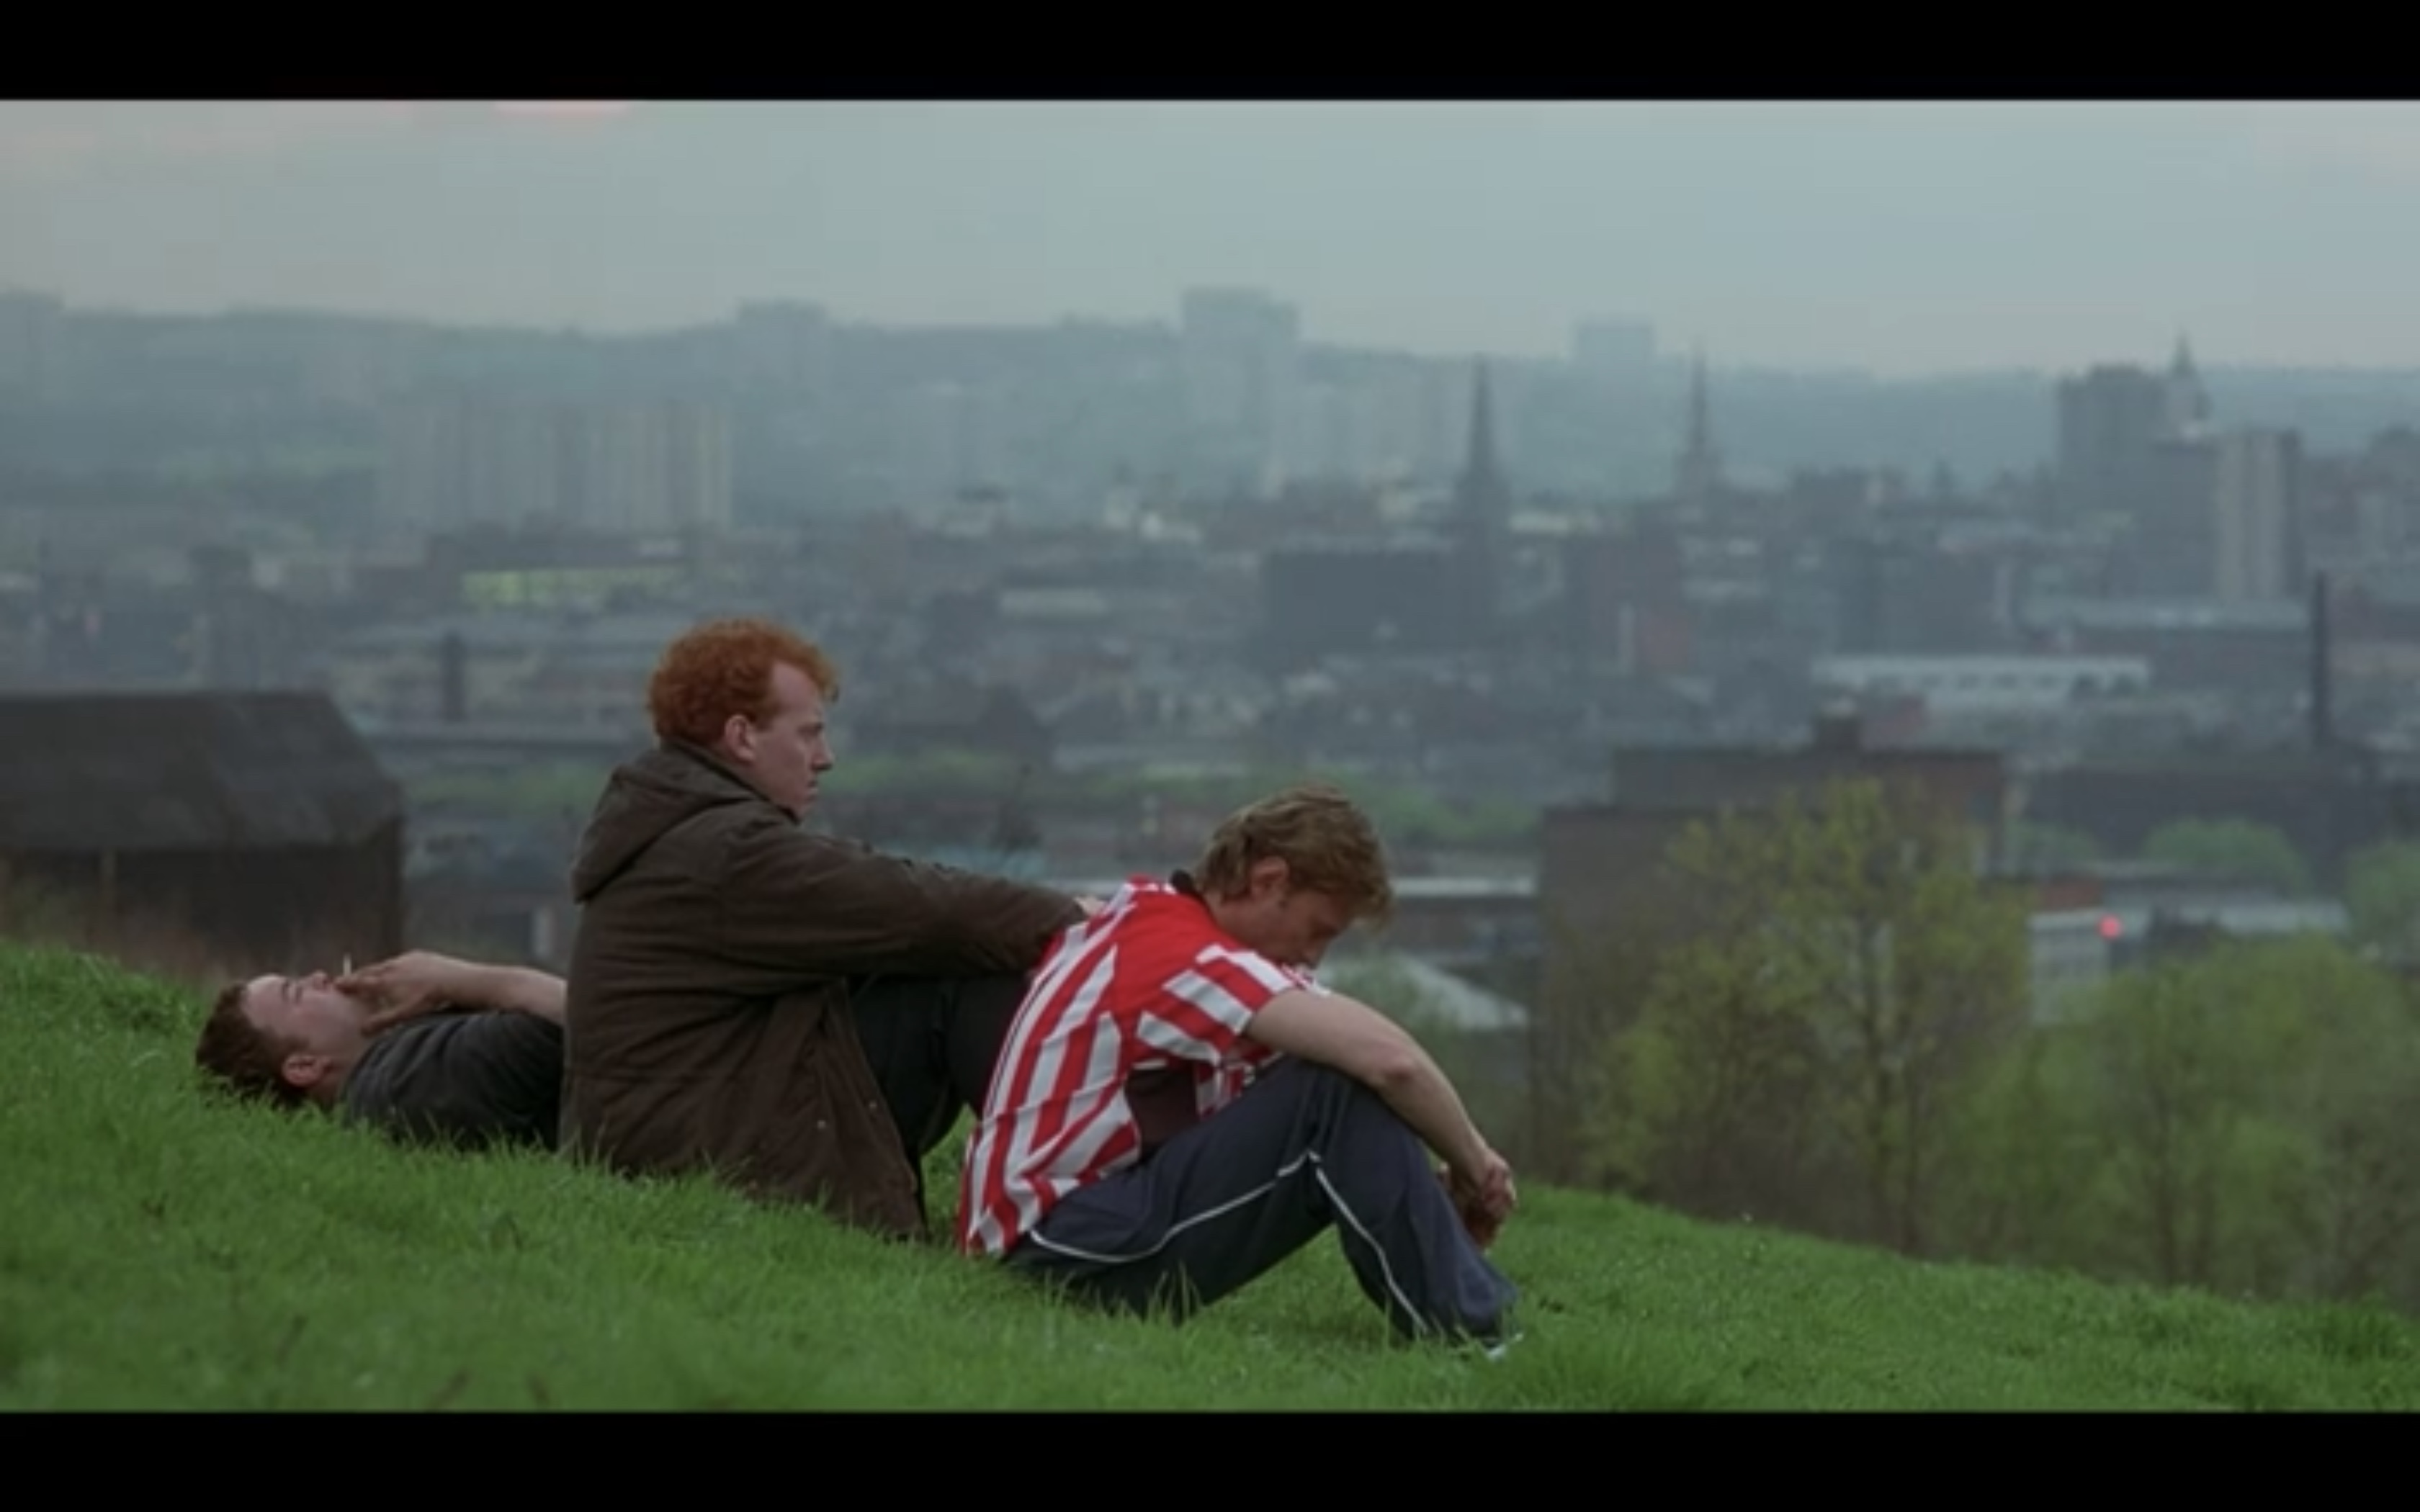 Can you identify where this Full Monty filming location is/was?